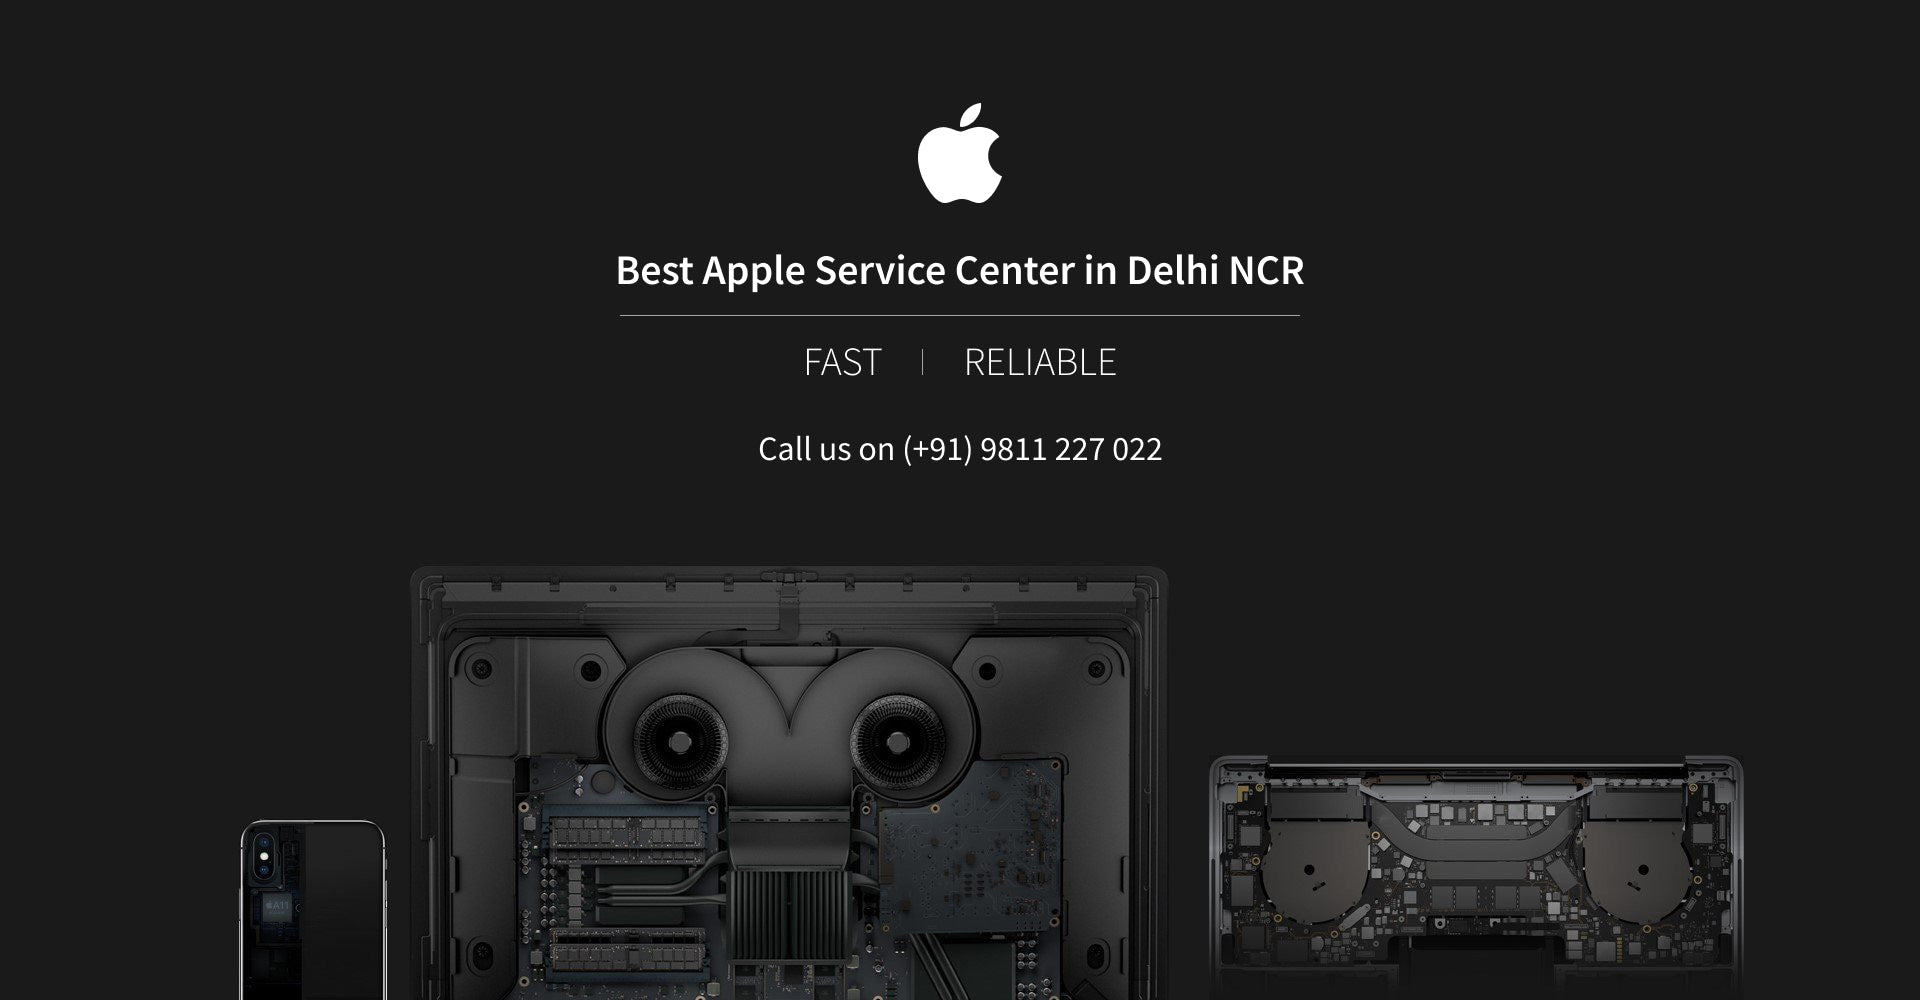 Best Apple Service Center in Delhi NCR. Fast and Reliable. Call - 9811227022